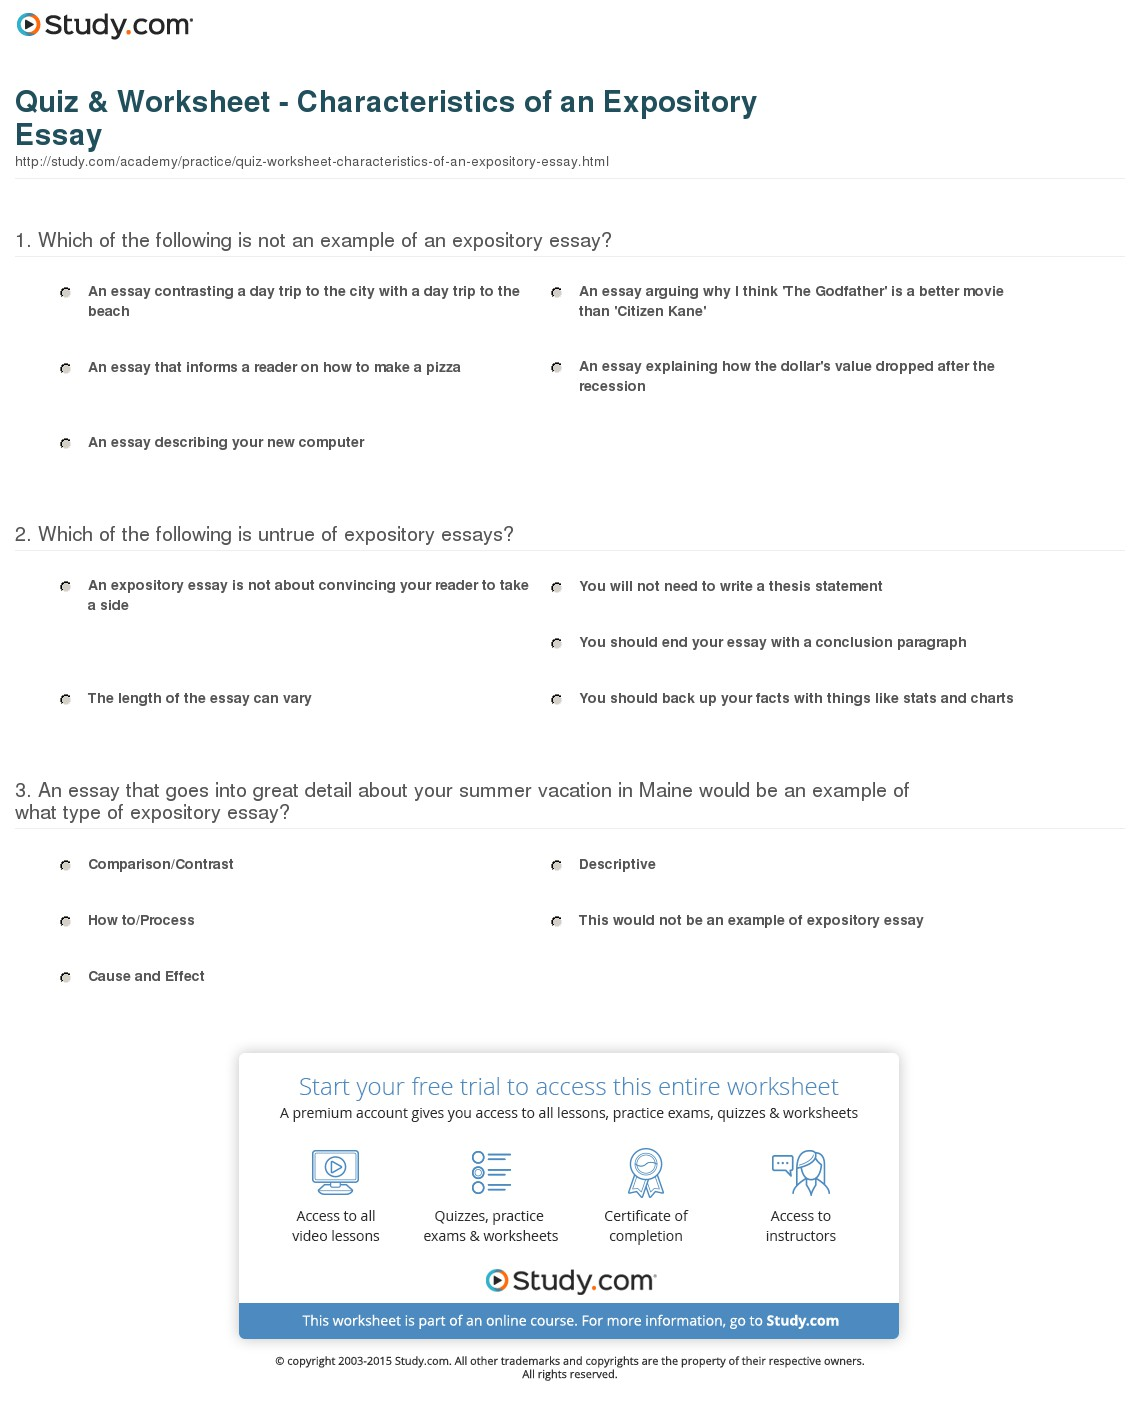 016 Expository Essay Format Quiz Worksheet Characteristics Of An Fascinating Examples For College Pdf Outline Full